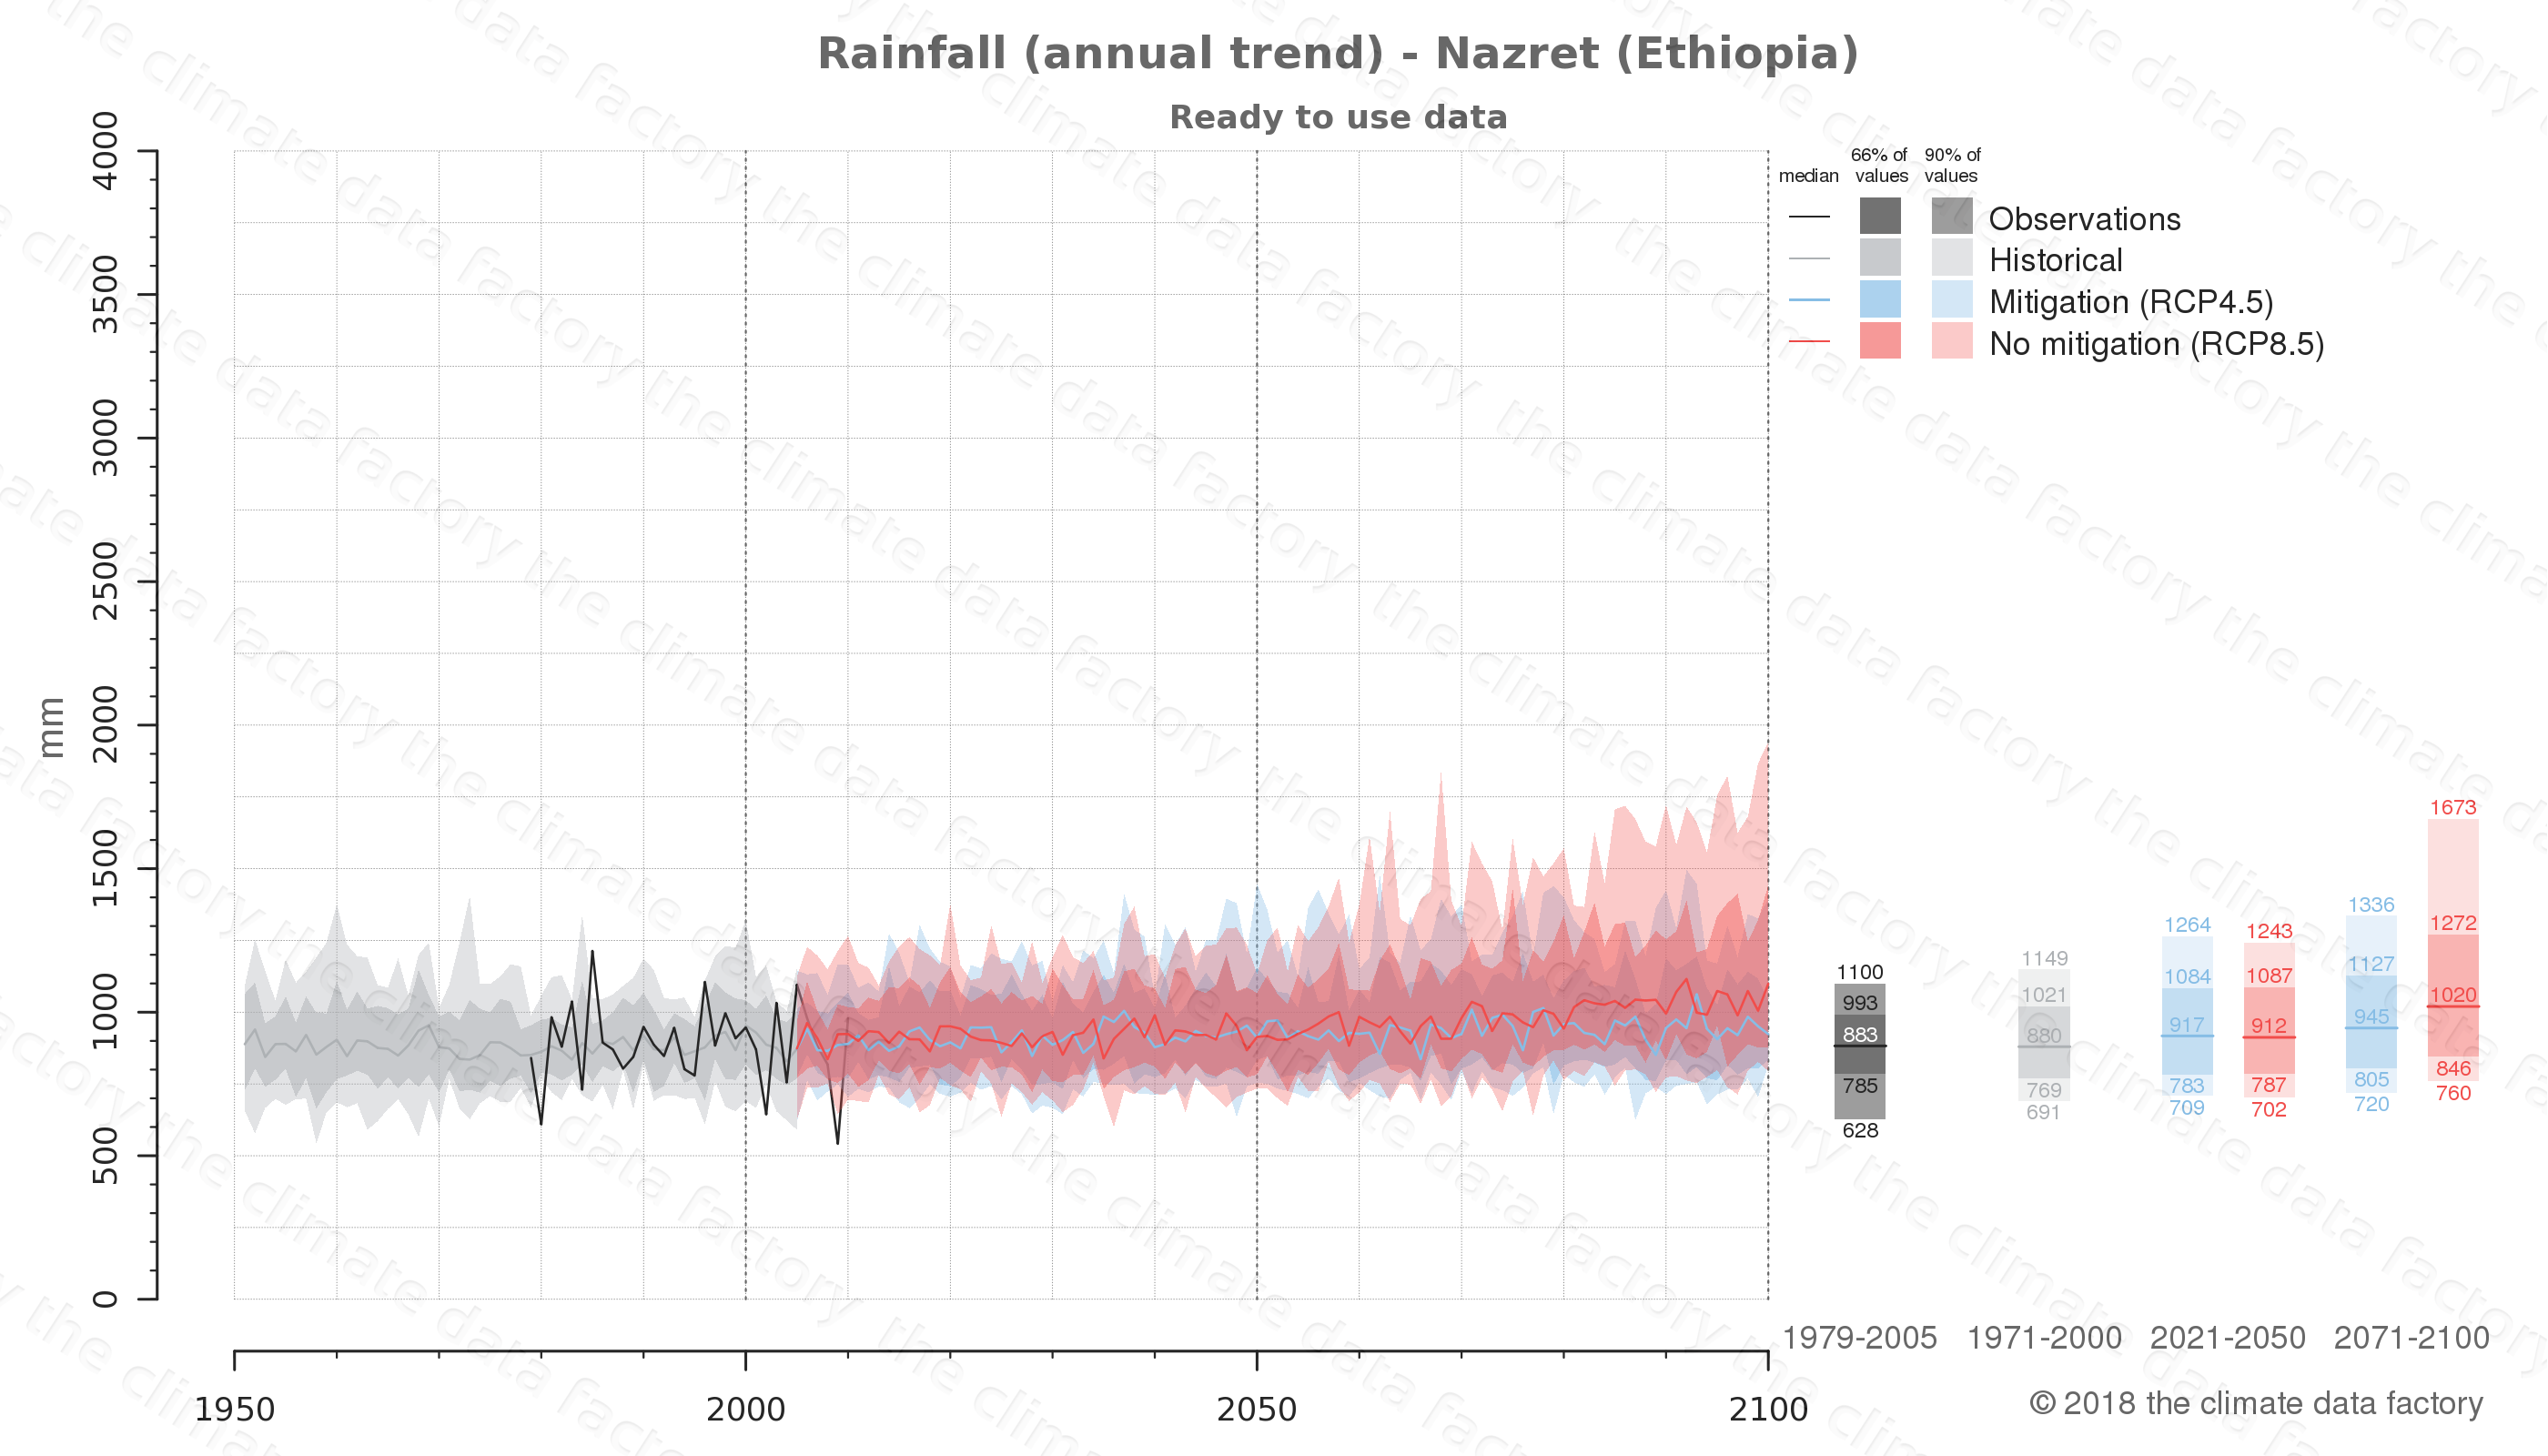 climate change data policy adaptation climate graph city data rainfall nazret ethiopia